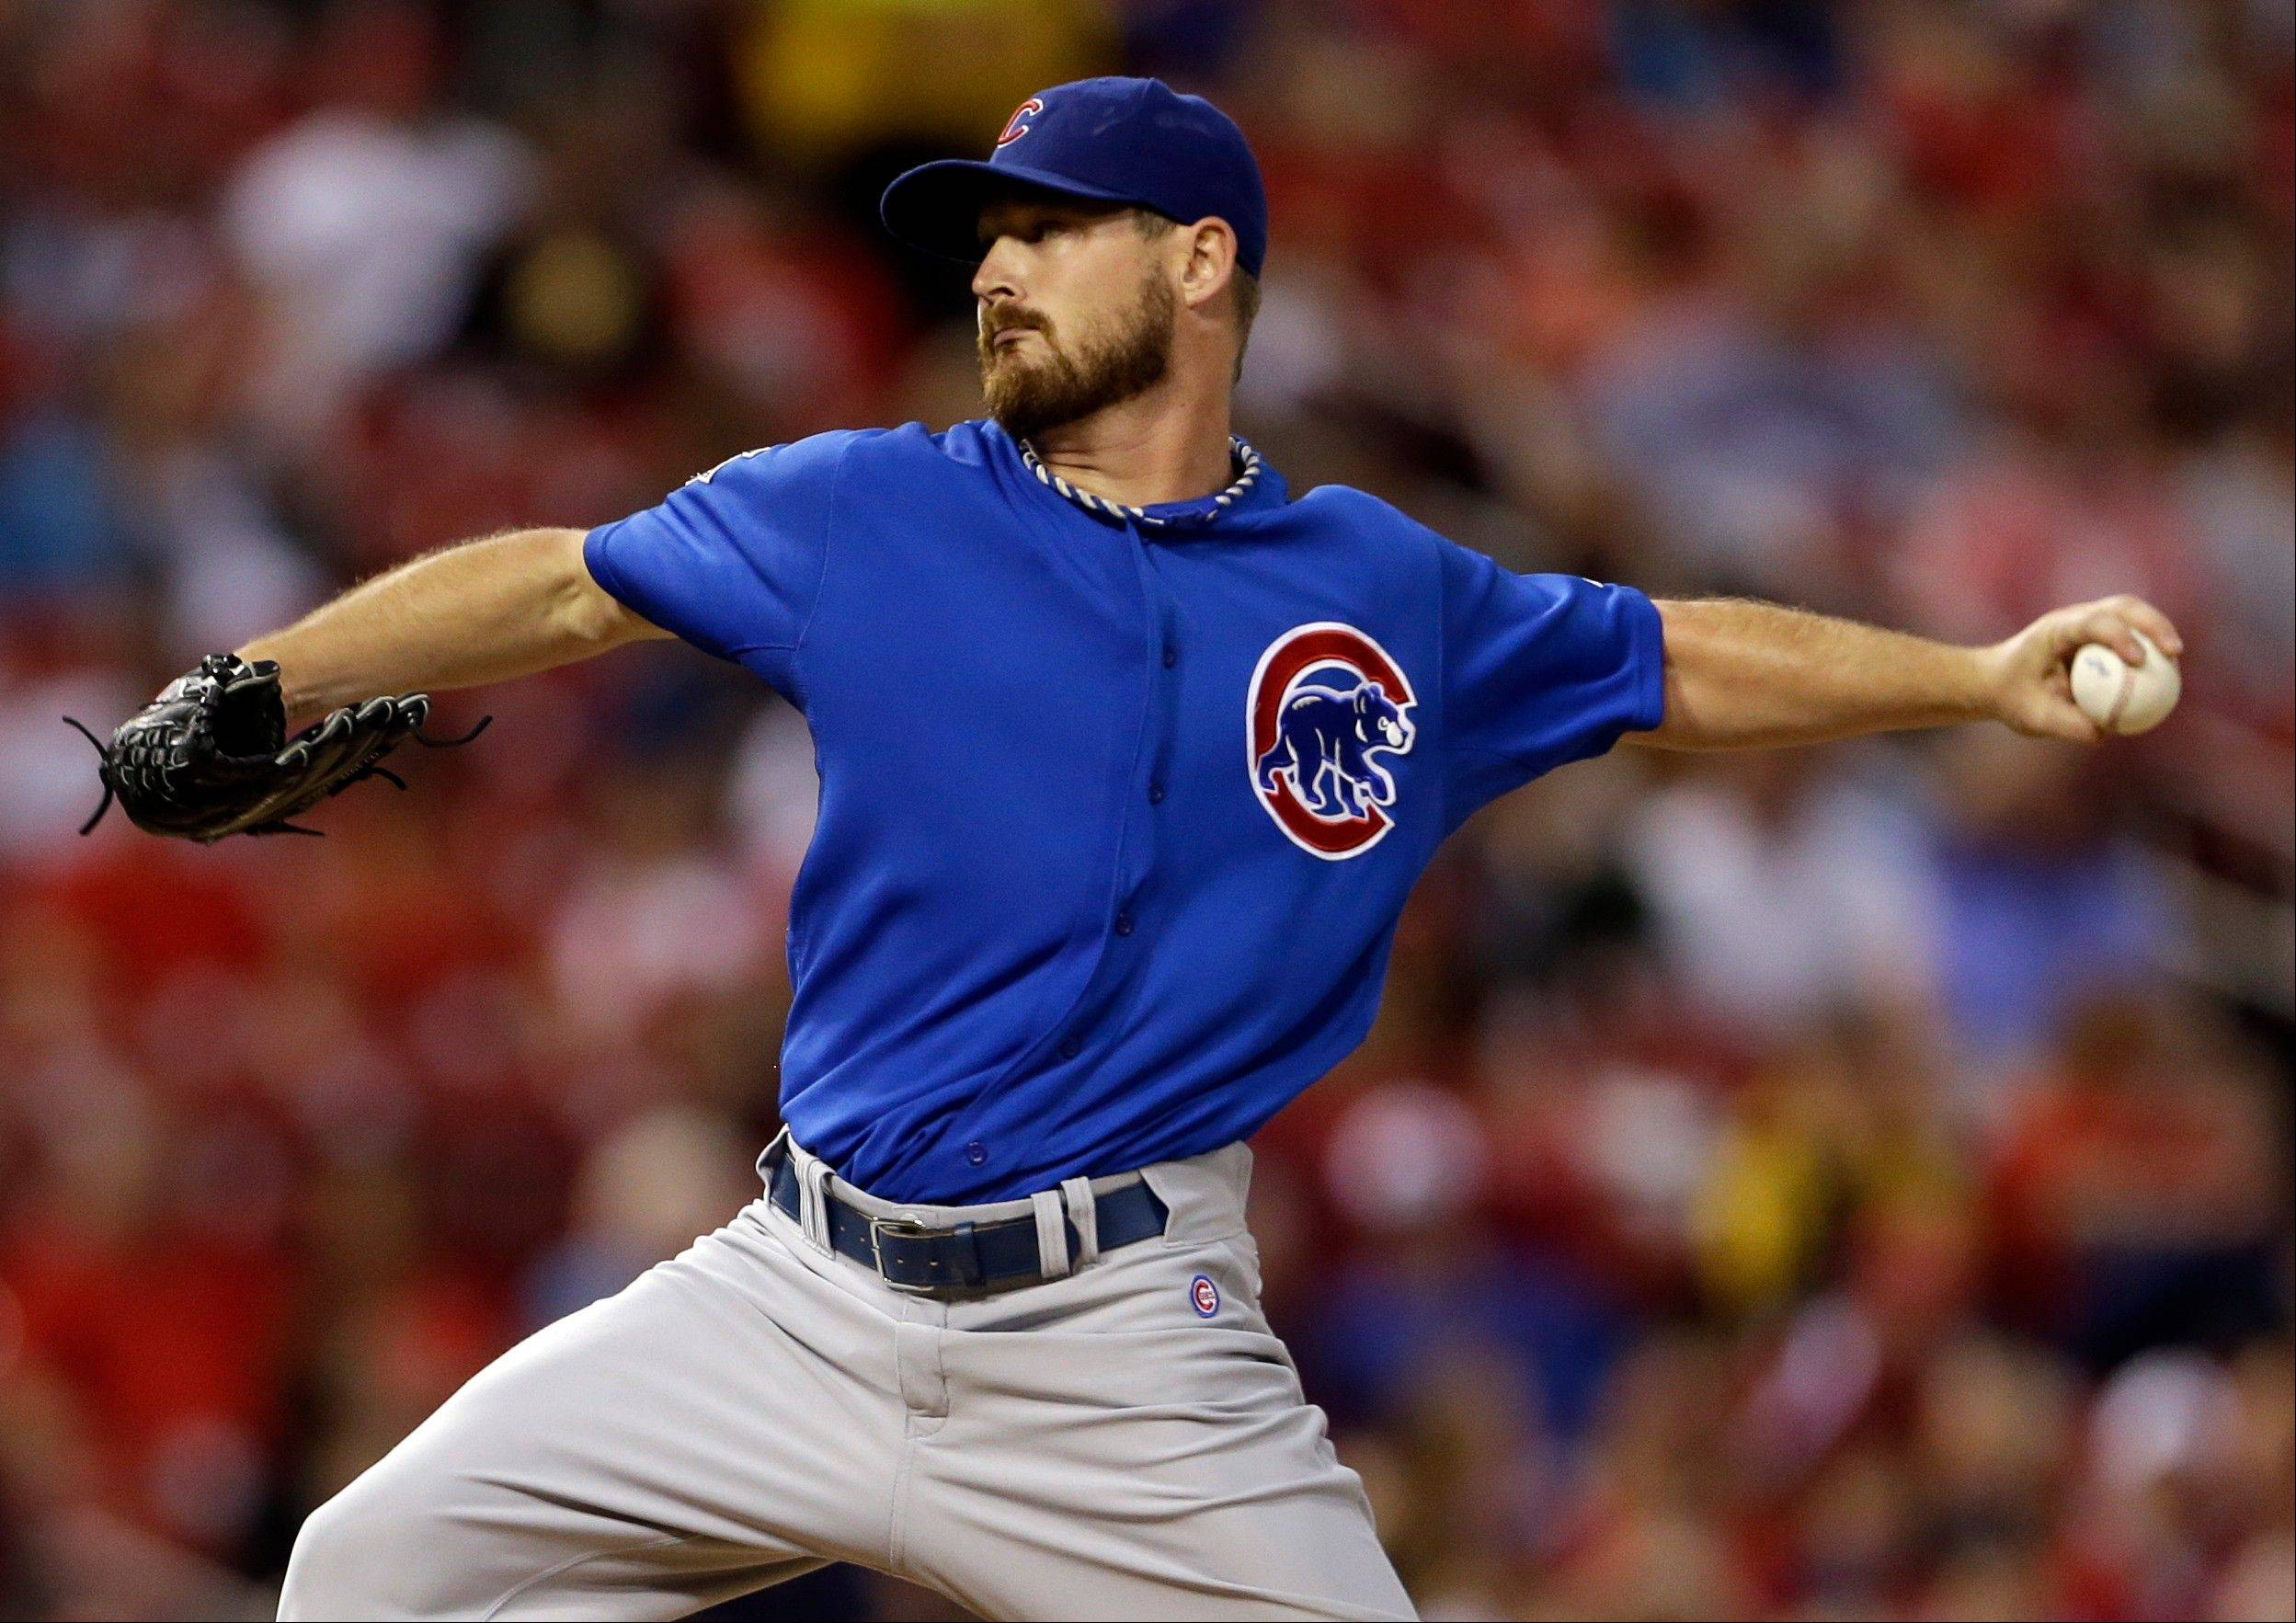 Cubs starting pitcher Travis Wood was named Saturday to the 2013 All-Star Game.